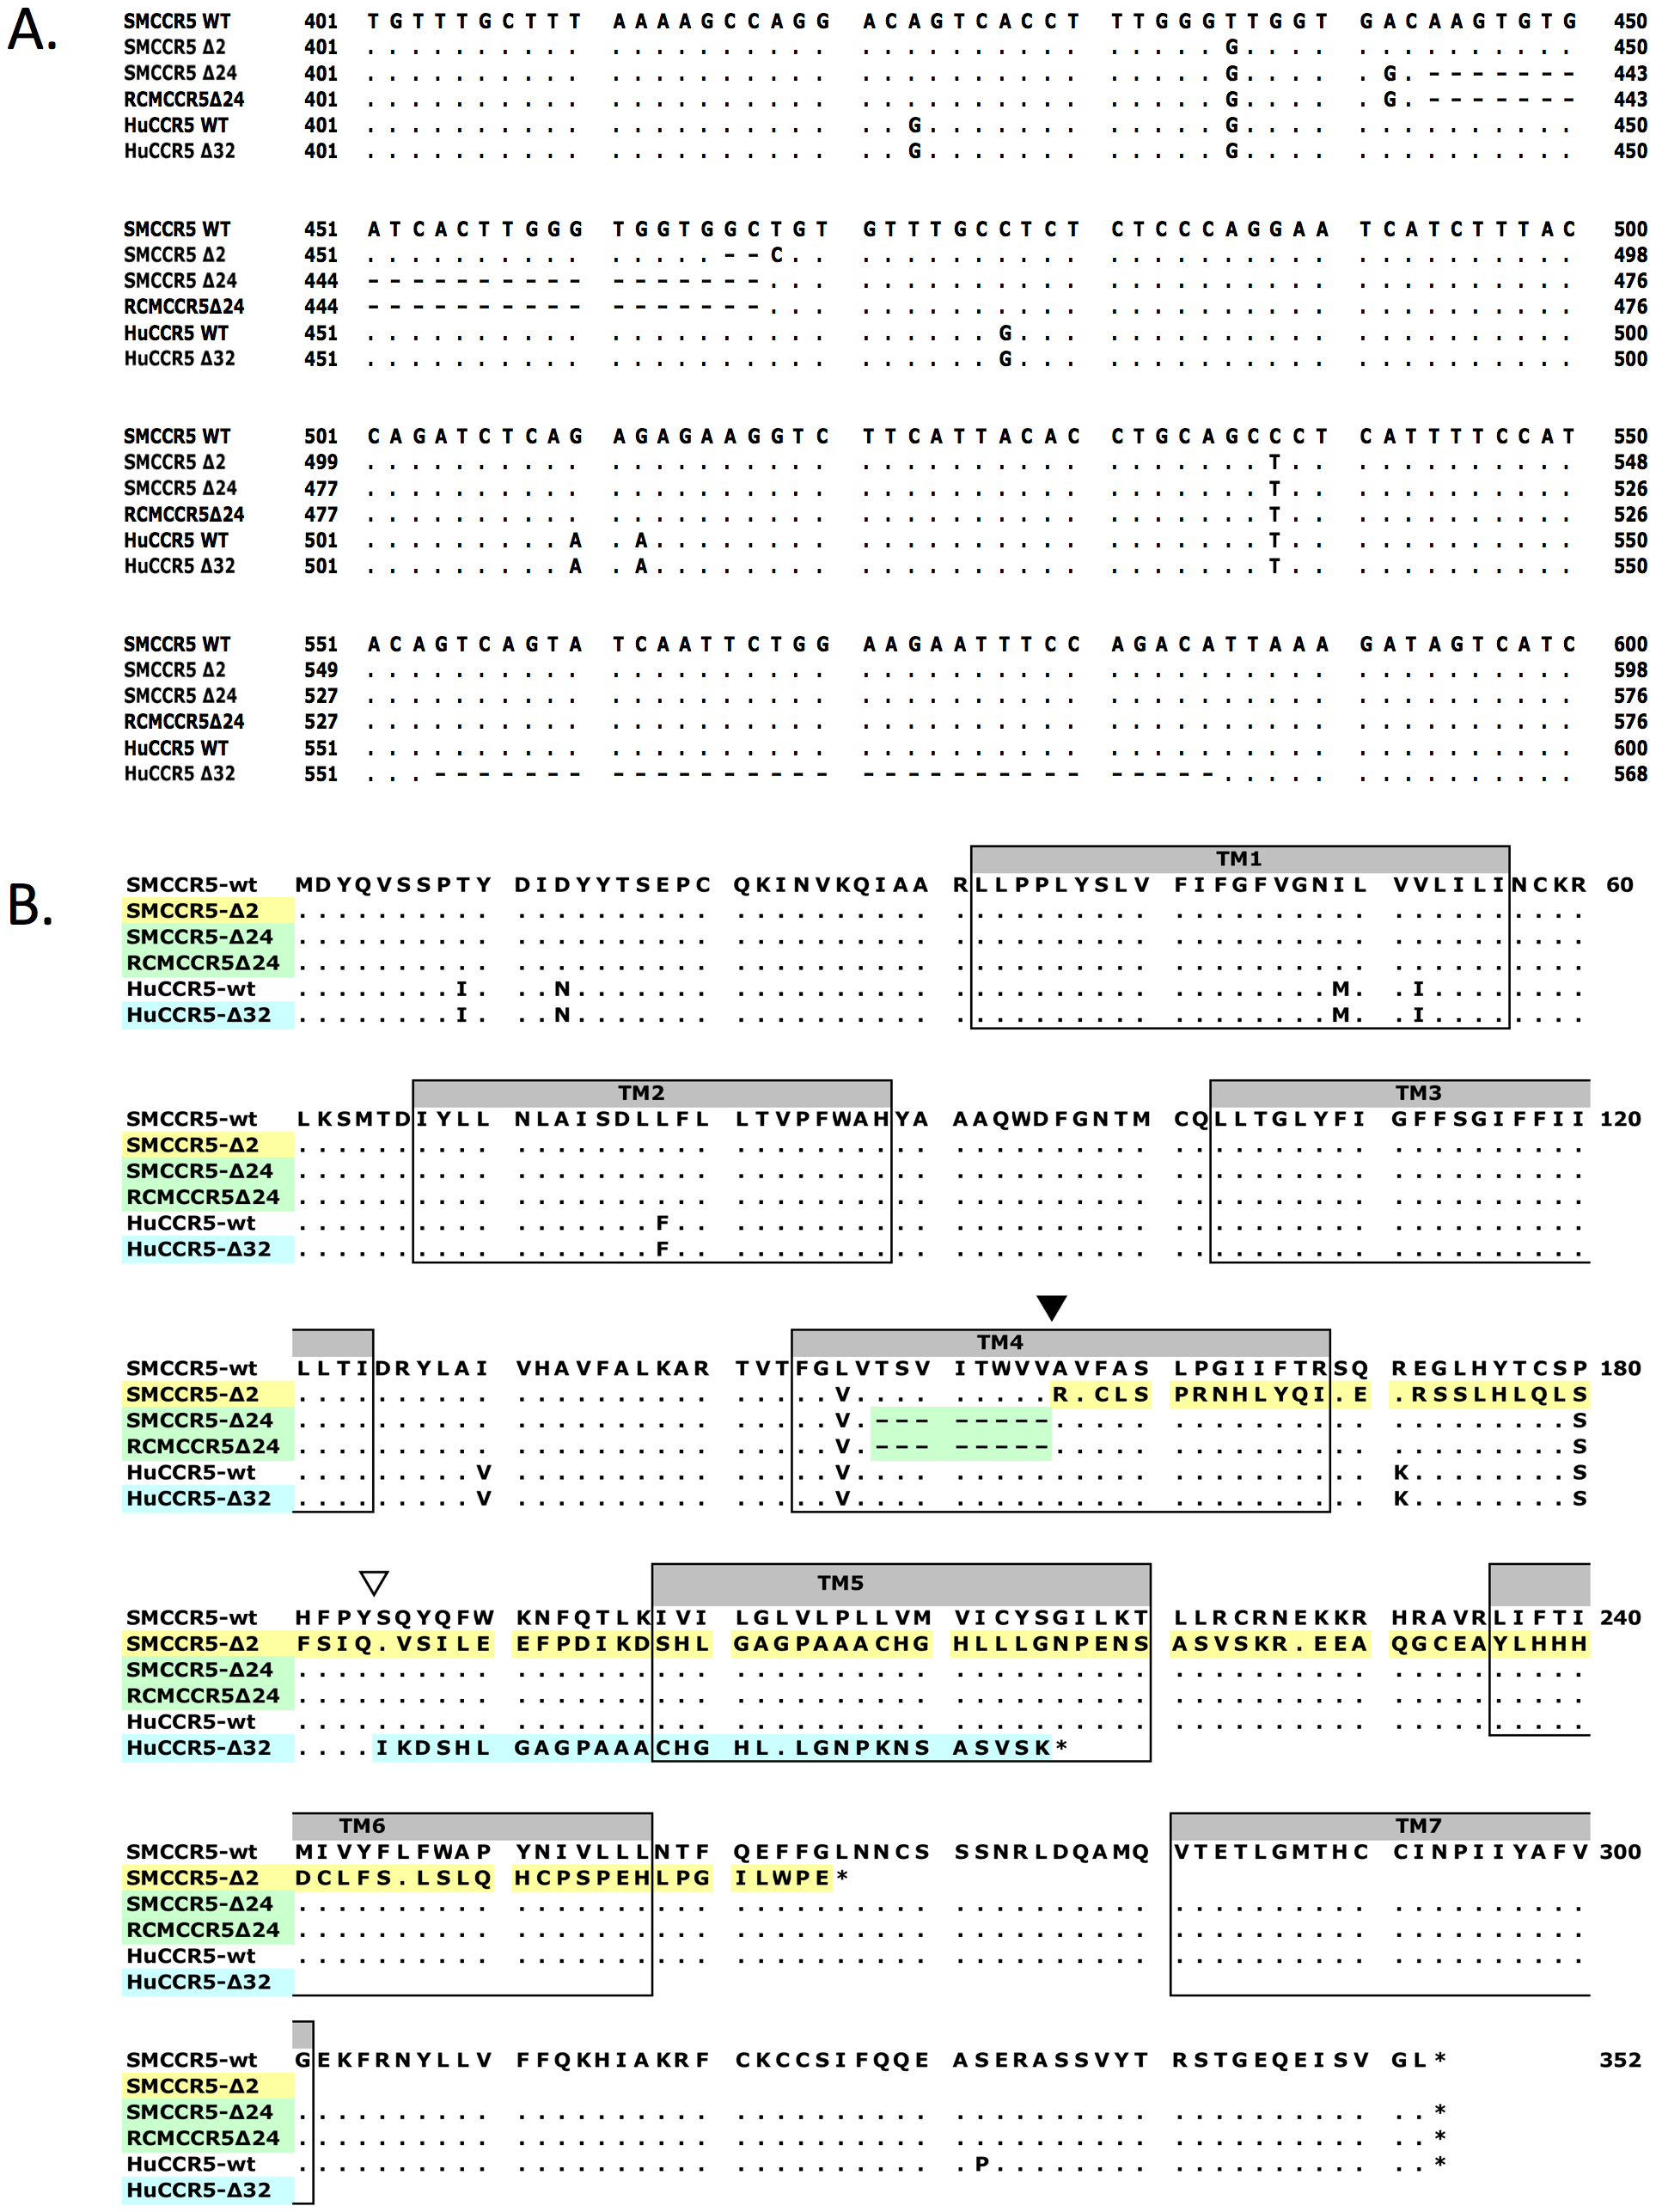 Sequence alignment of wild-type and mutant CCR5 genes.